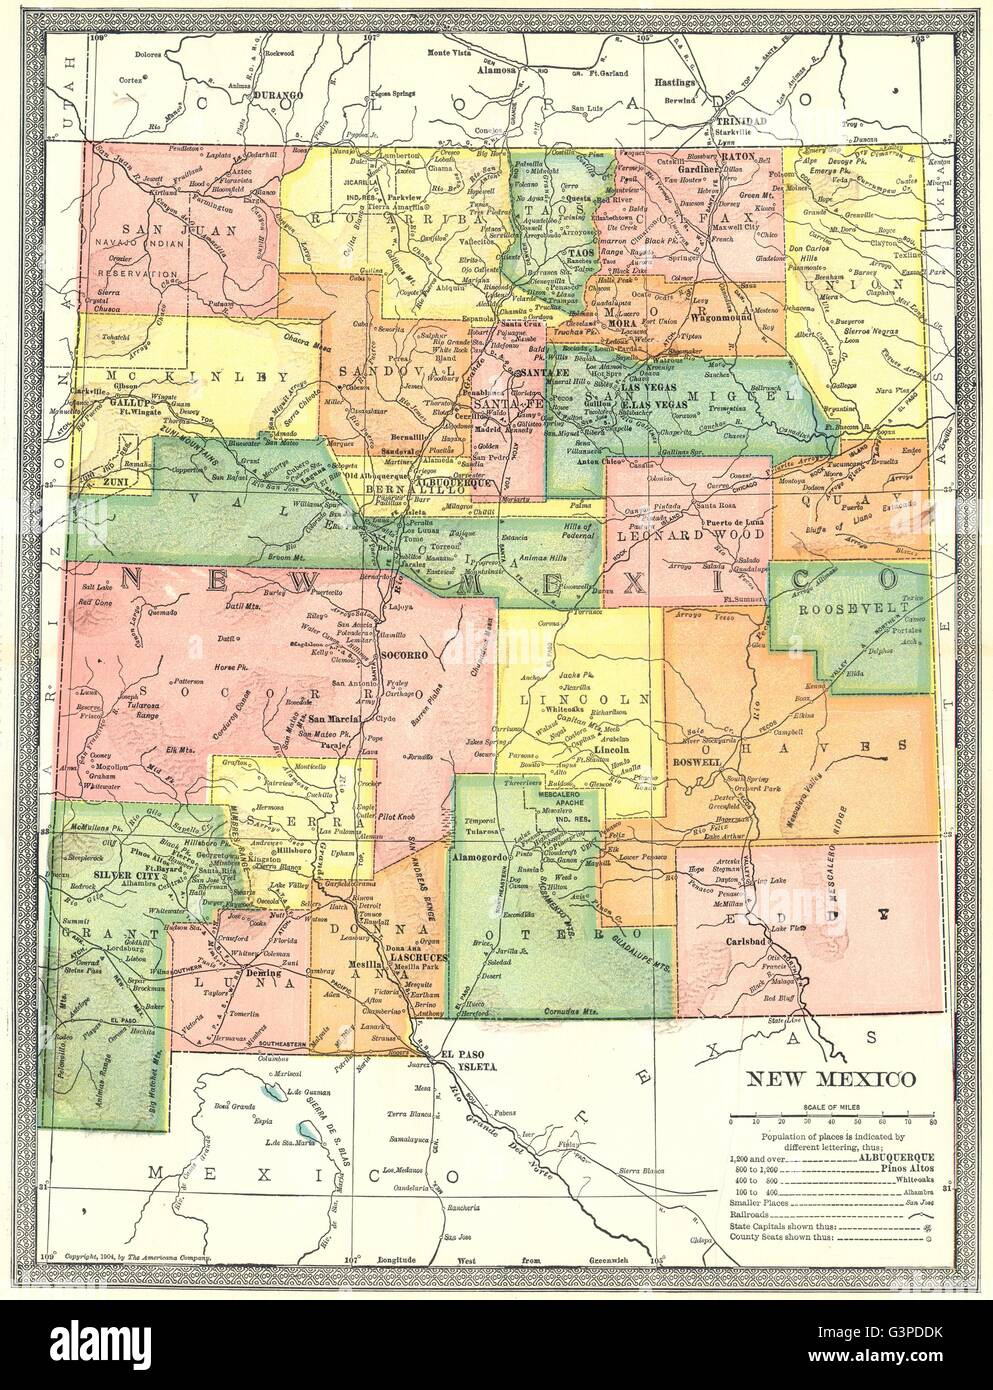 New Mexico State Map Stock Photos & New Mexico State Map Stock ...